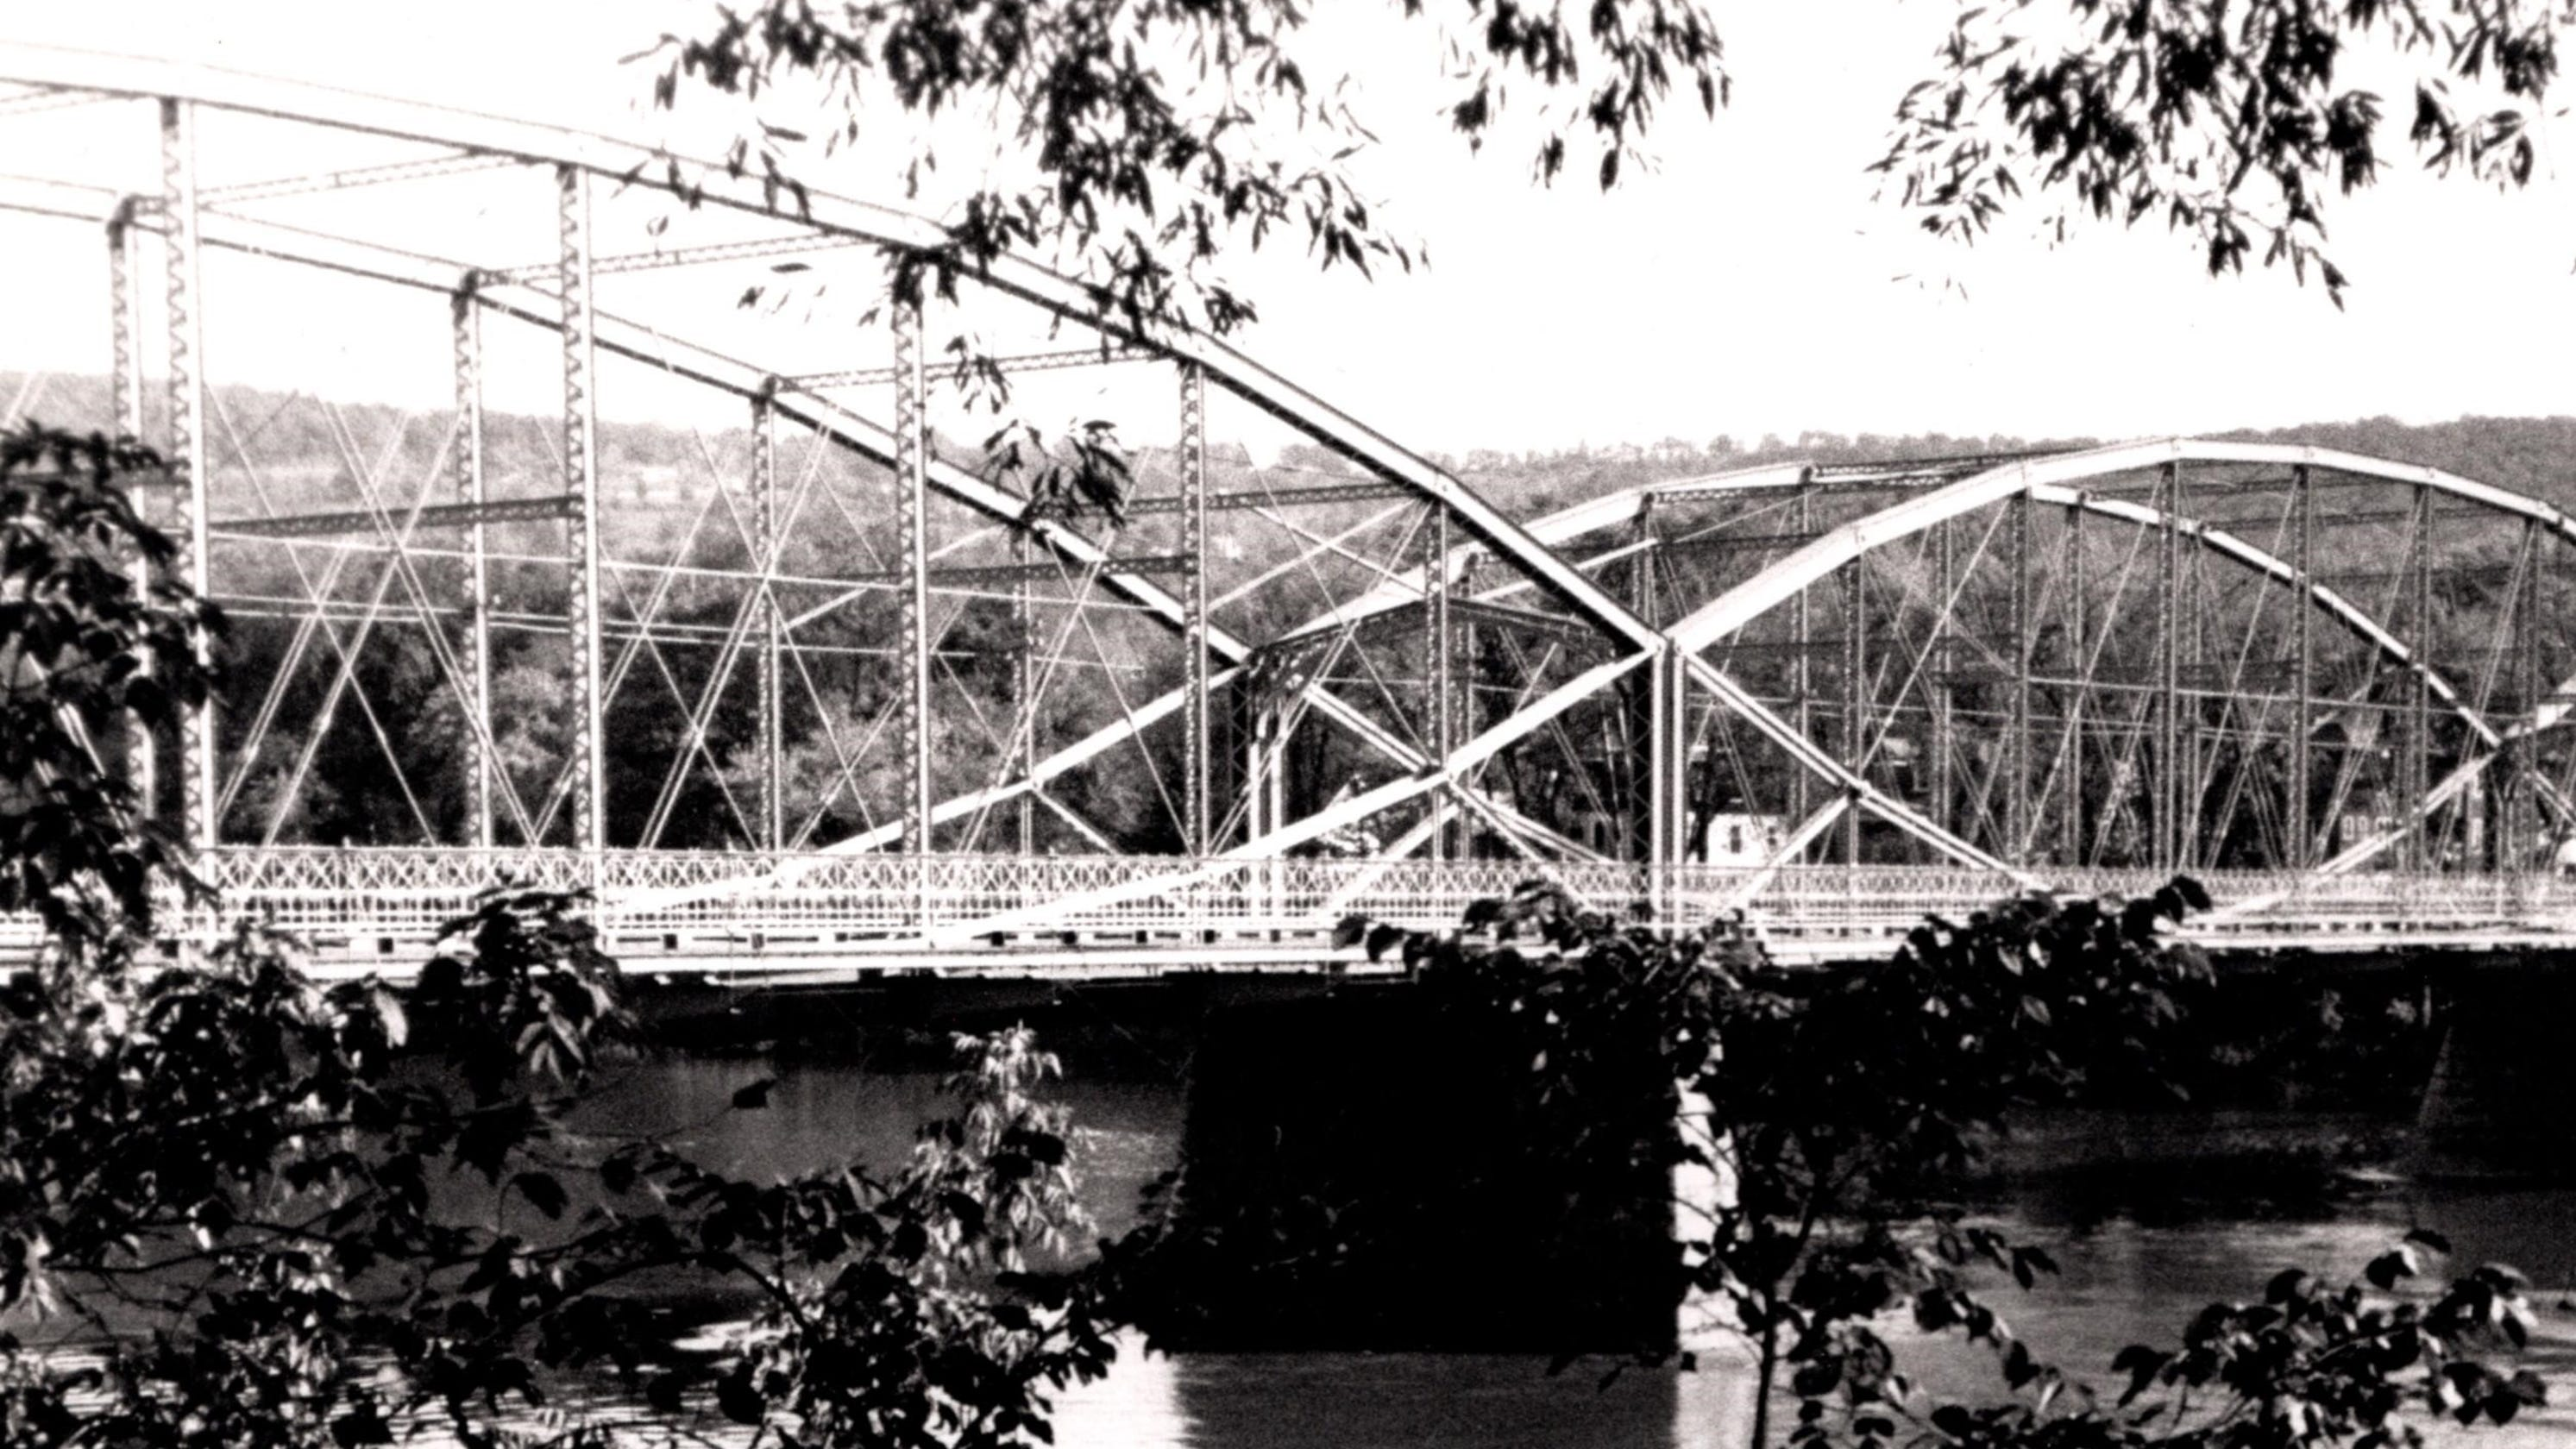 Binghamton Saw Several Bridges Come And Go In The 19th Century